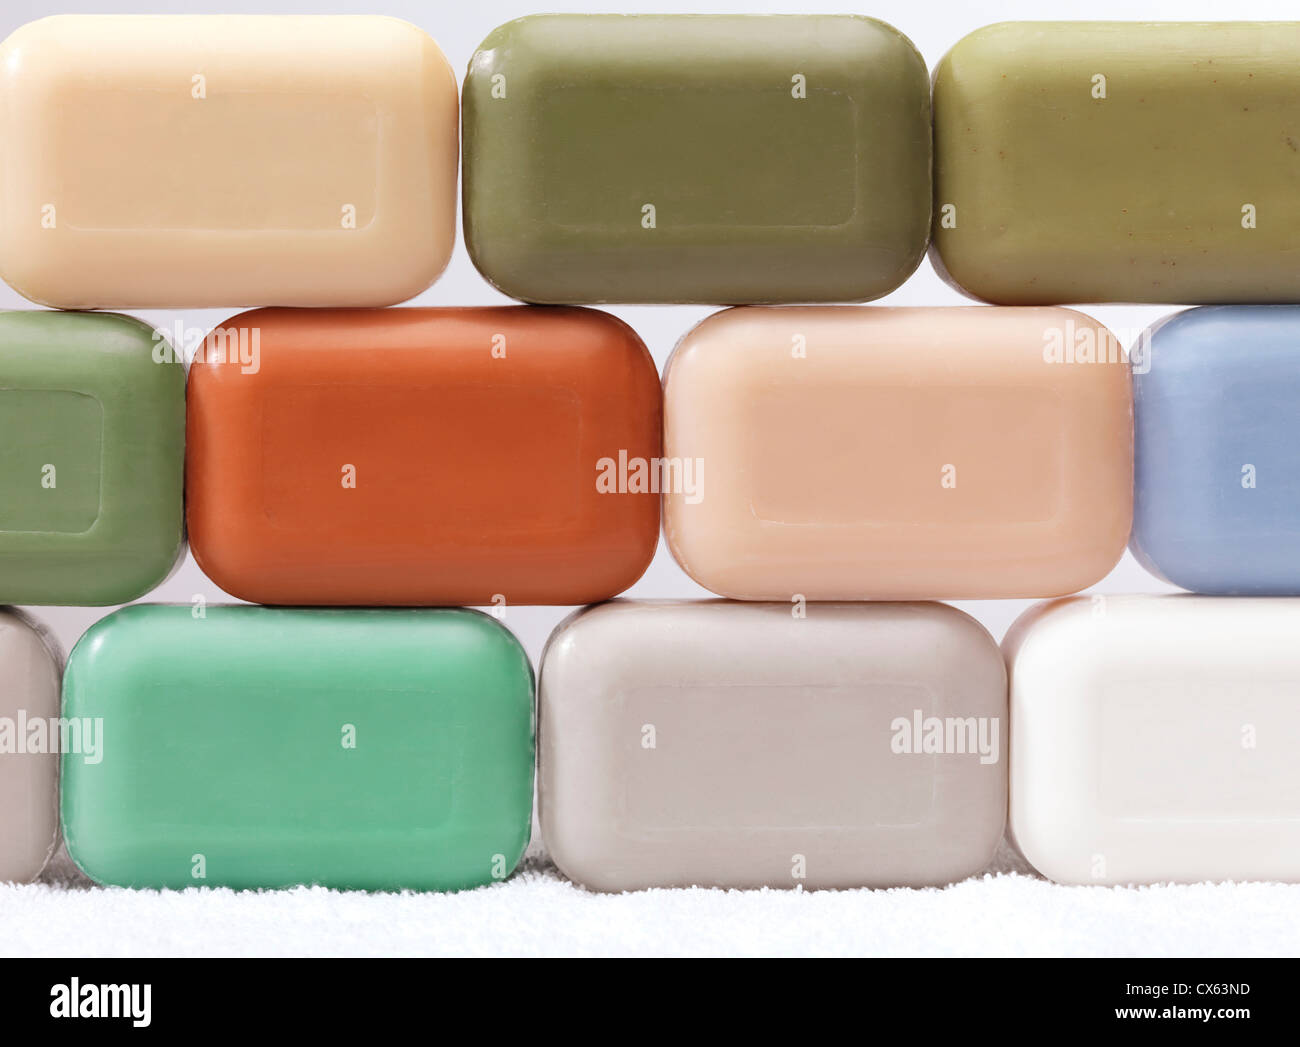 Different soap bars with healthy natural ingredients Stock Photo